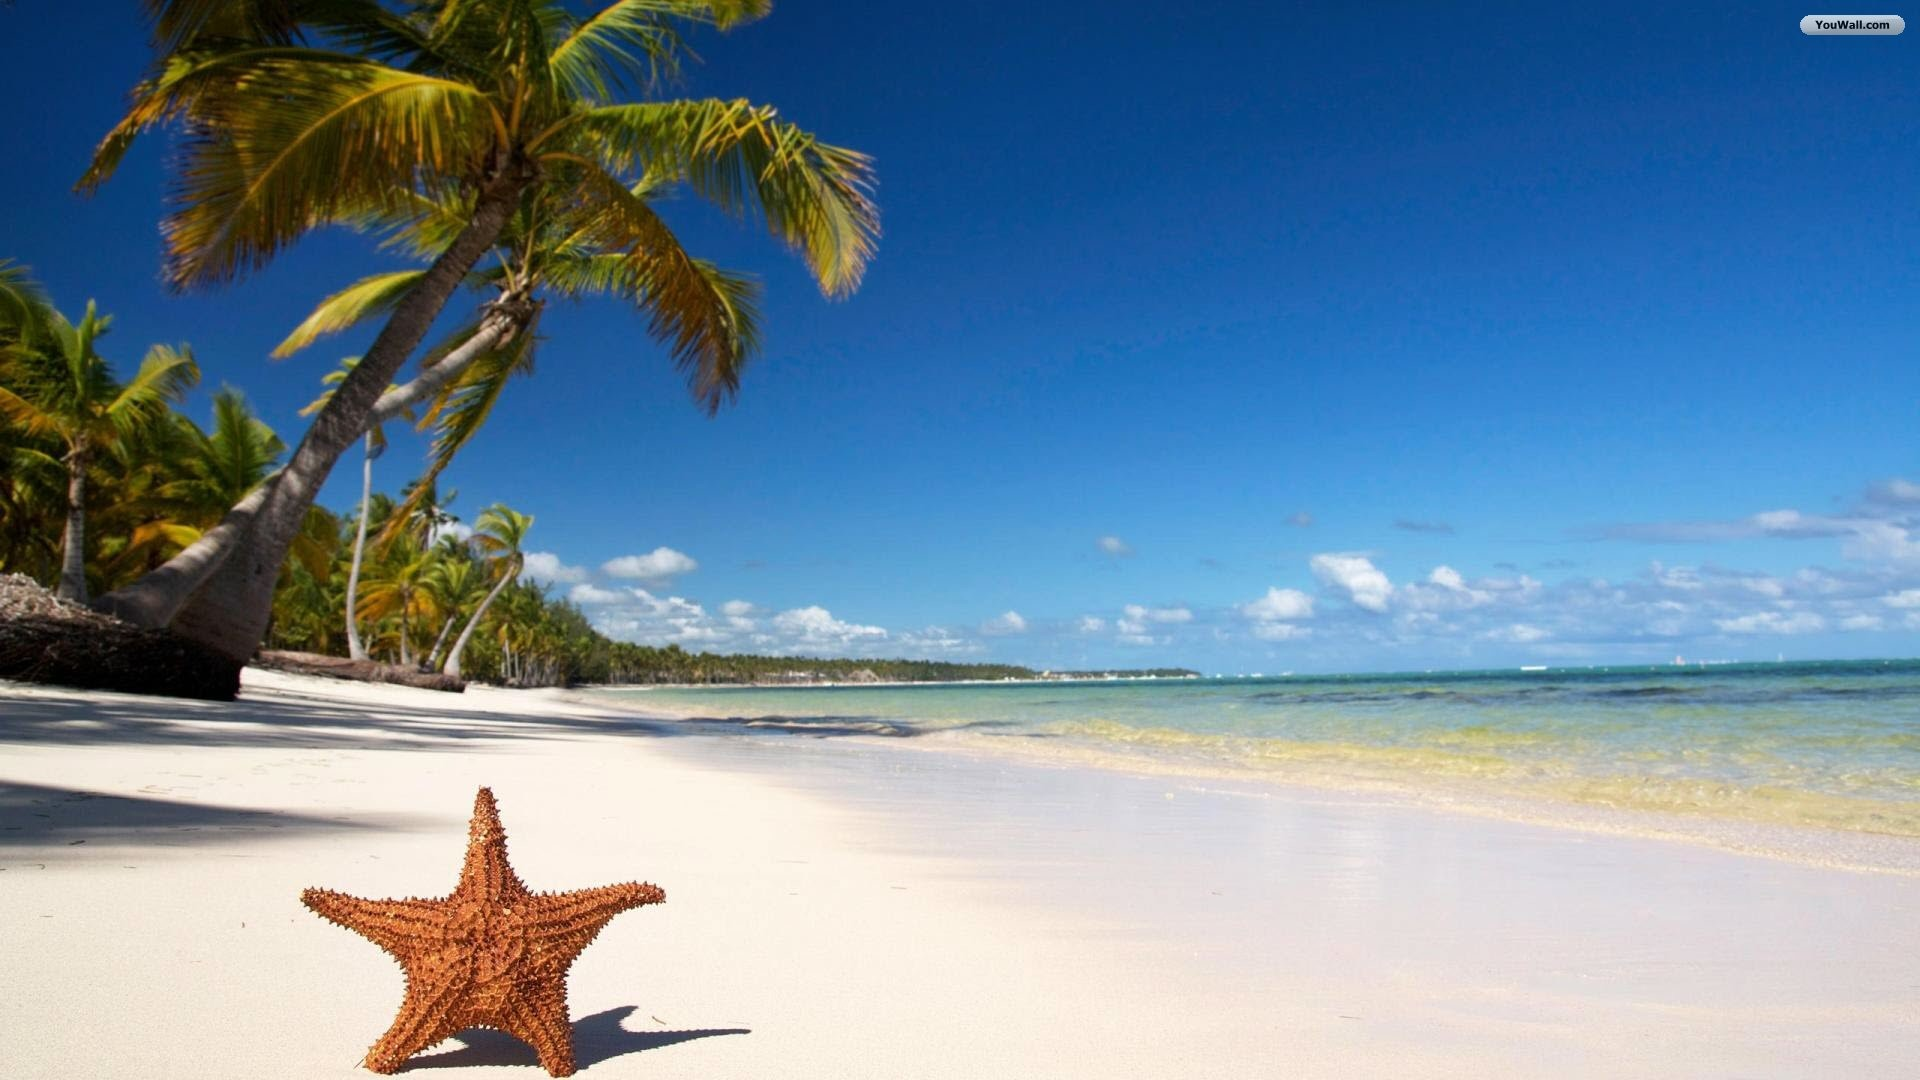 Beaches Wallpapers-72